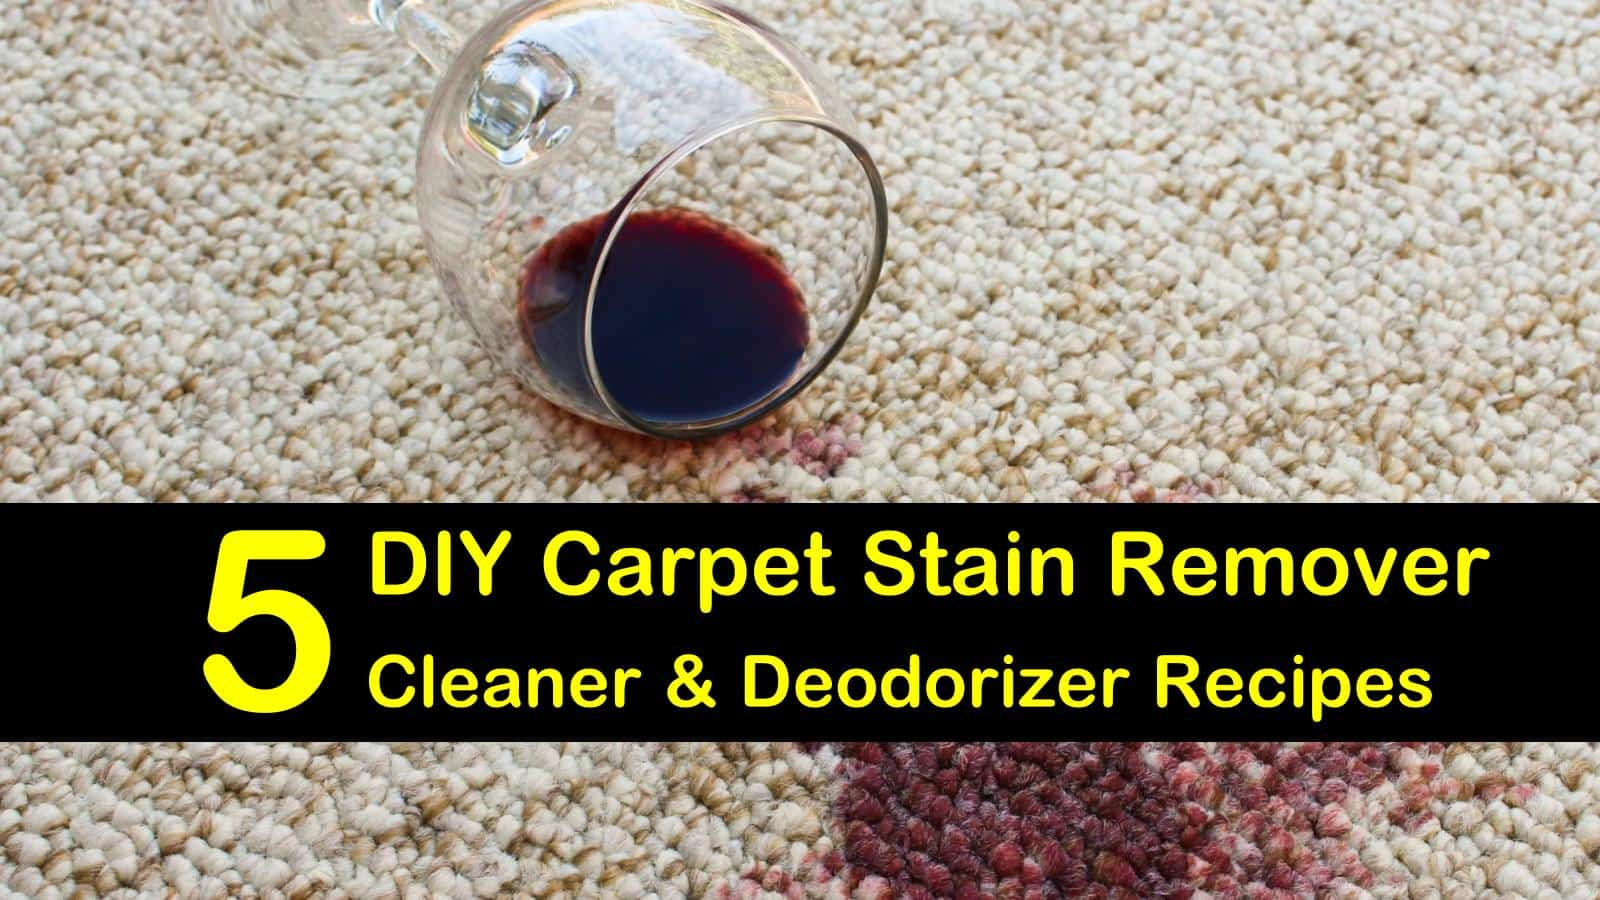 5 Diy Carpet Stain Remover Cleaner And Deodorizer Recipes